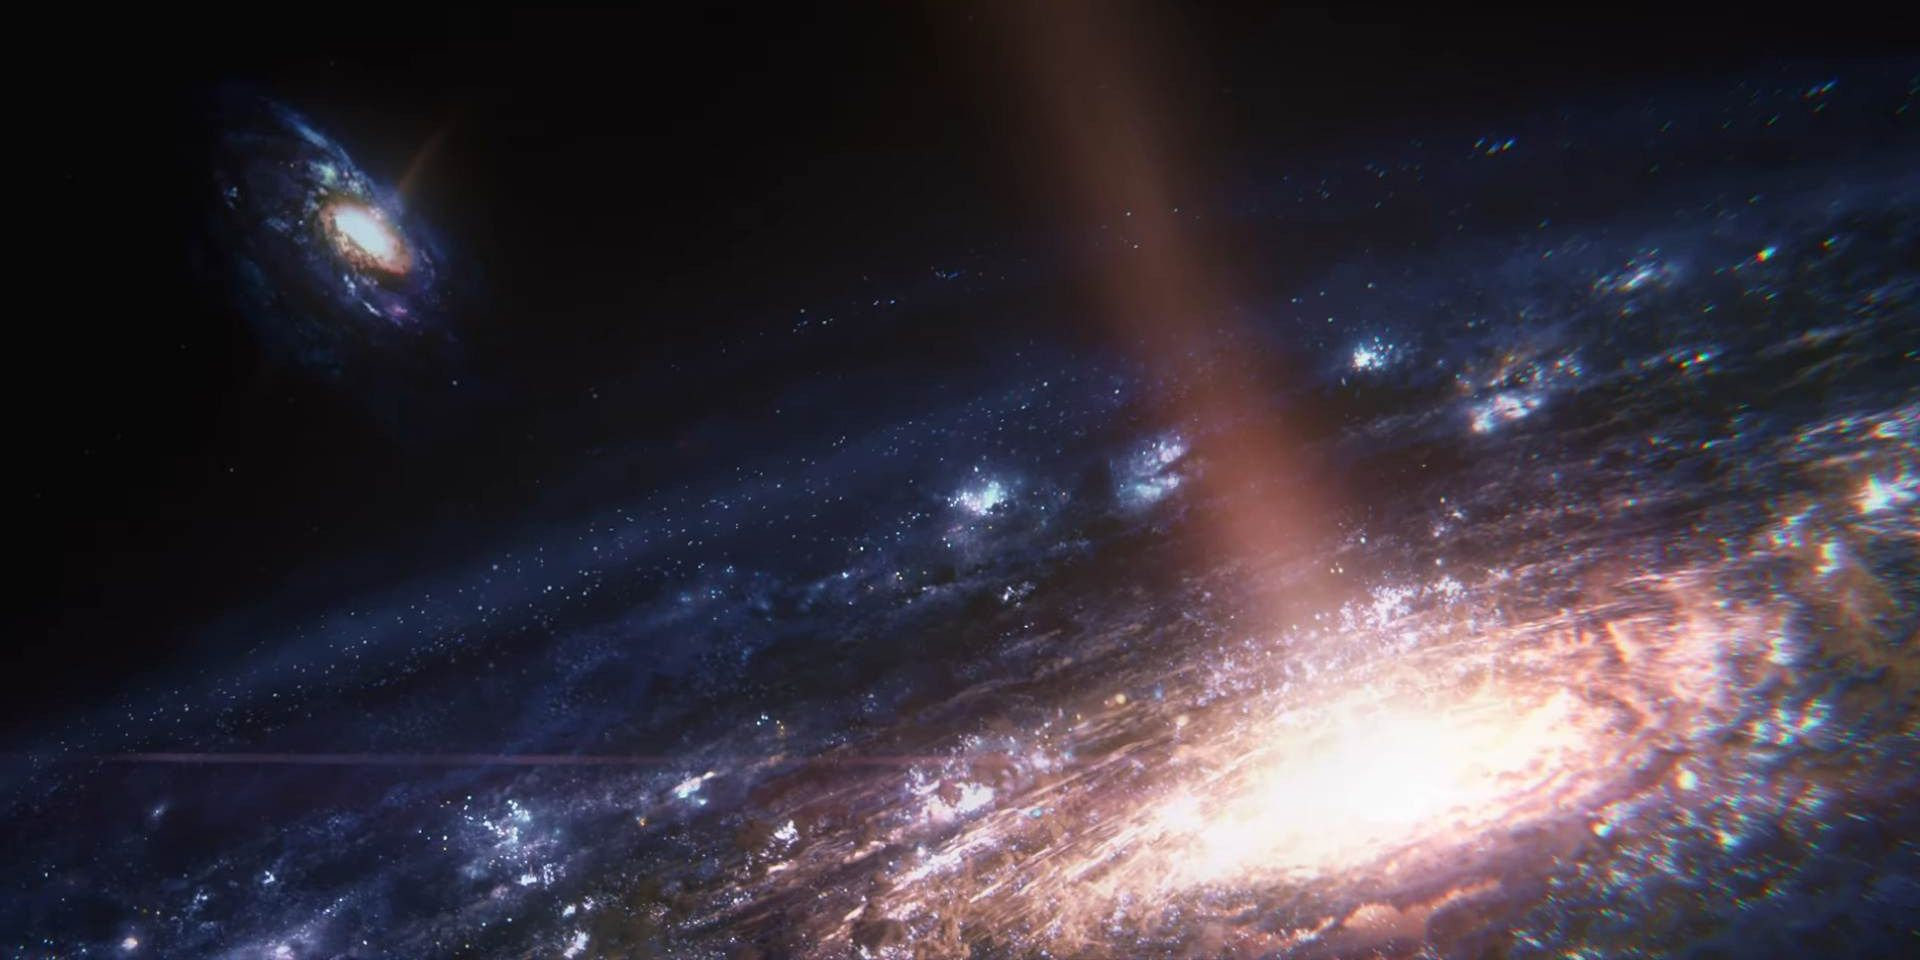 Mass Effect 4: Could the Scourge Return?